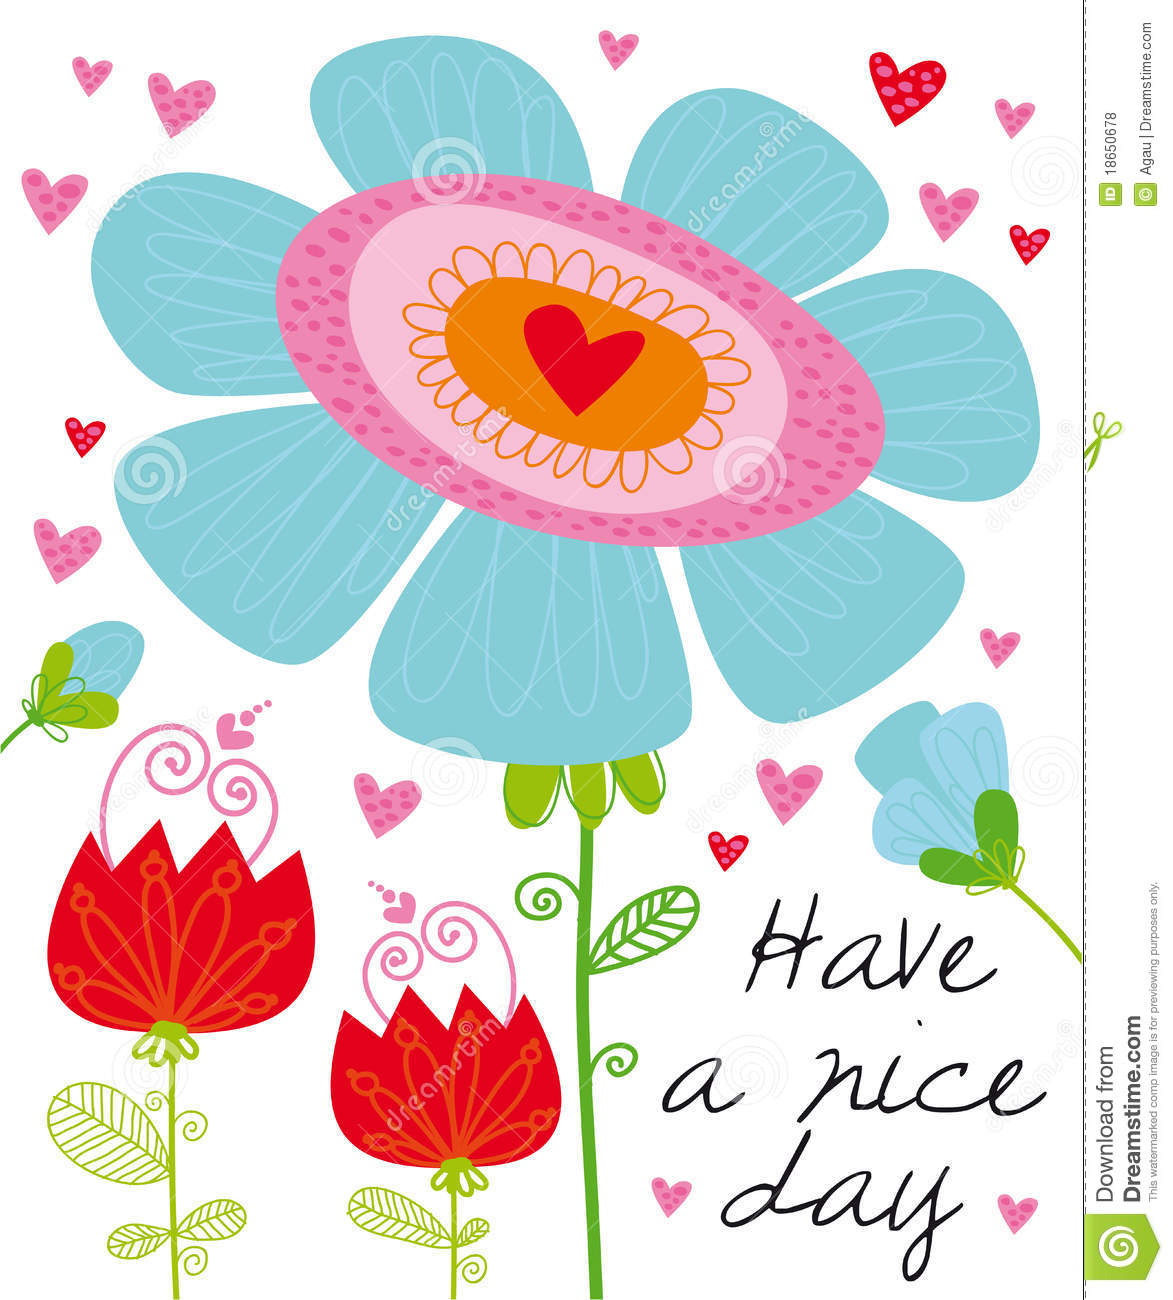 clipart have a good day - photo #46